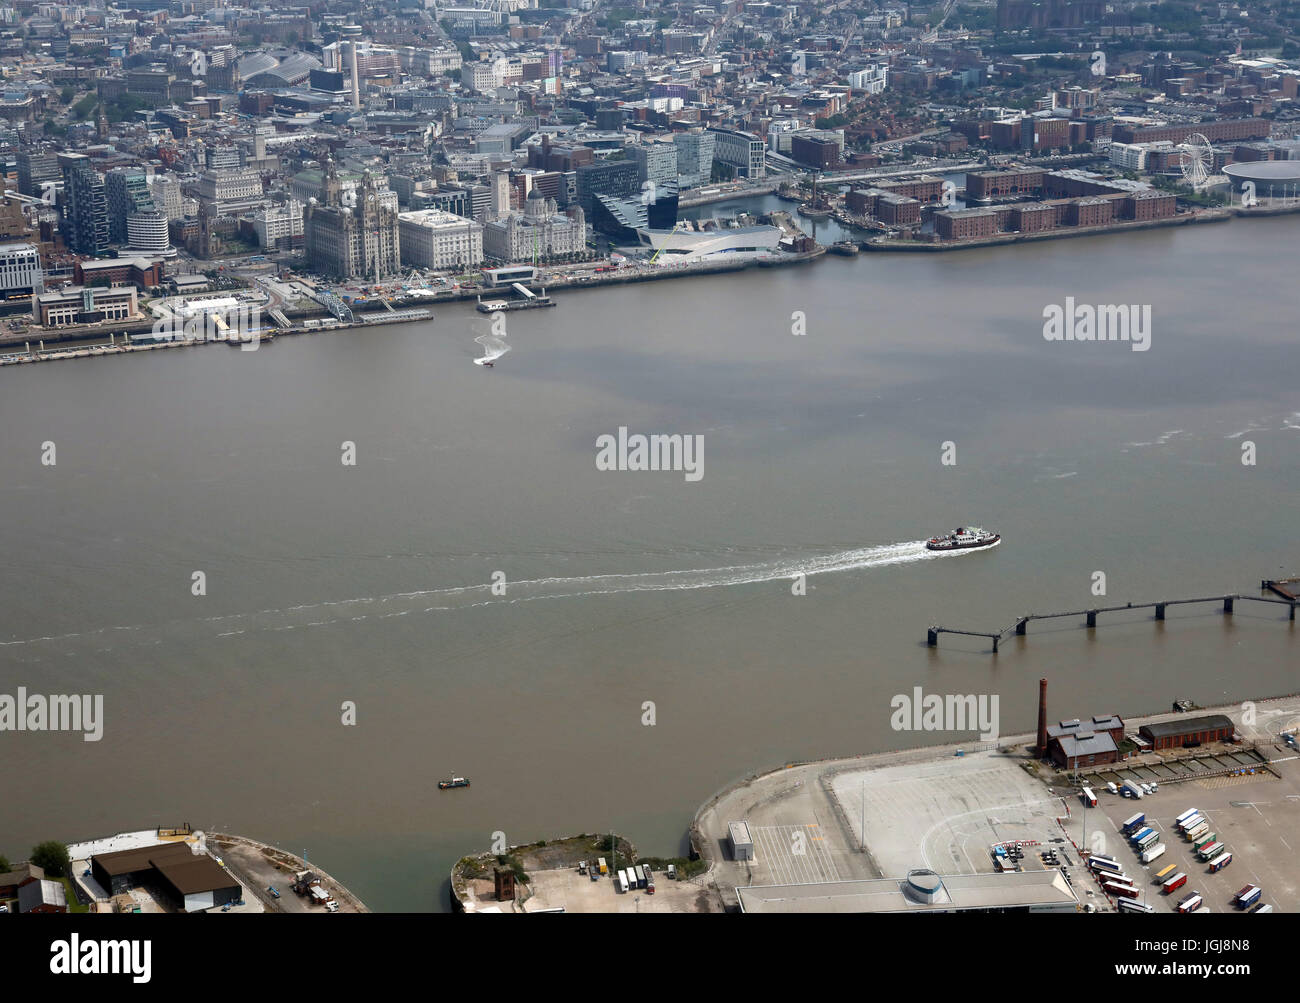 aerial view of the River Mersey ferry crossing from Birkenhead to Liverpool waterfront, UK - Stock Image